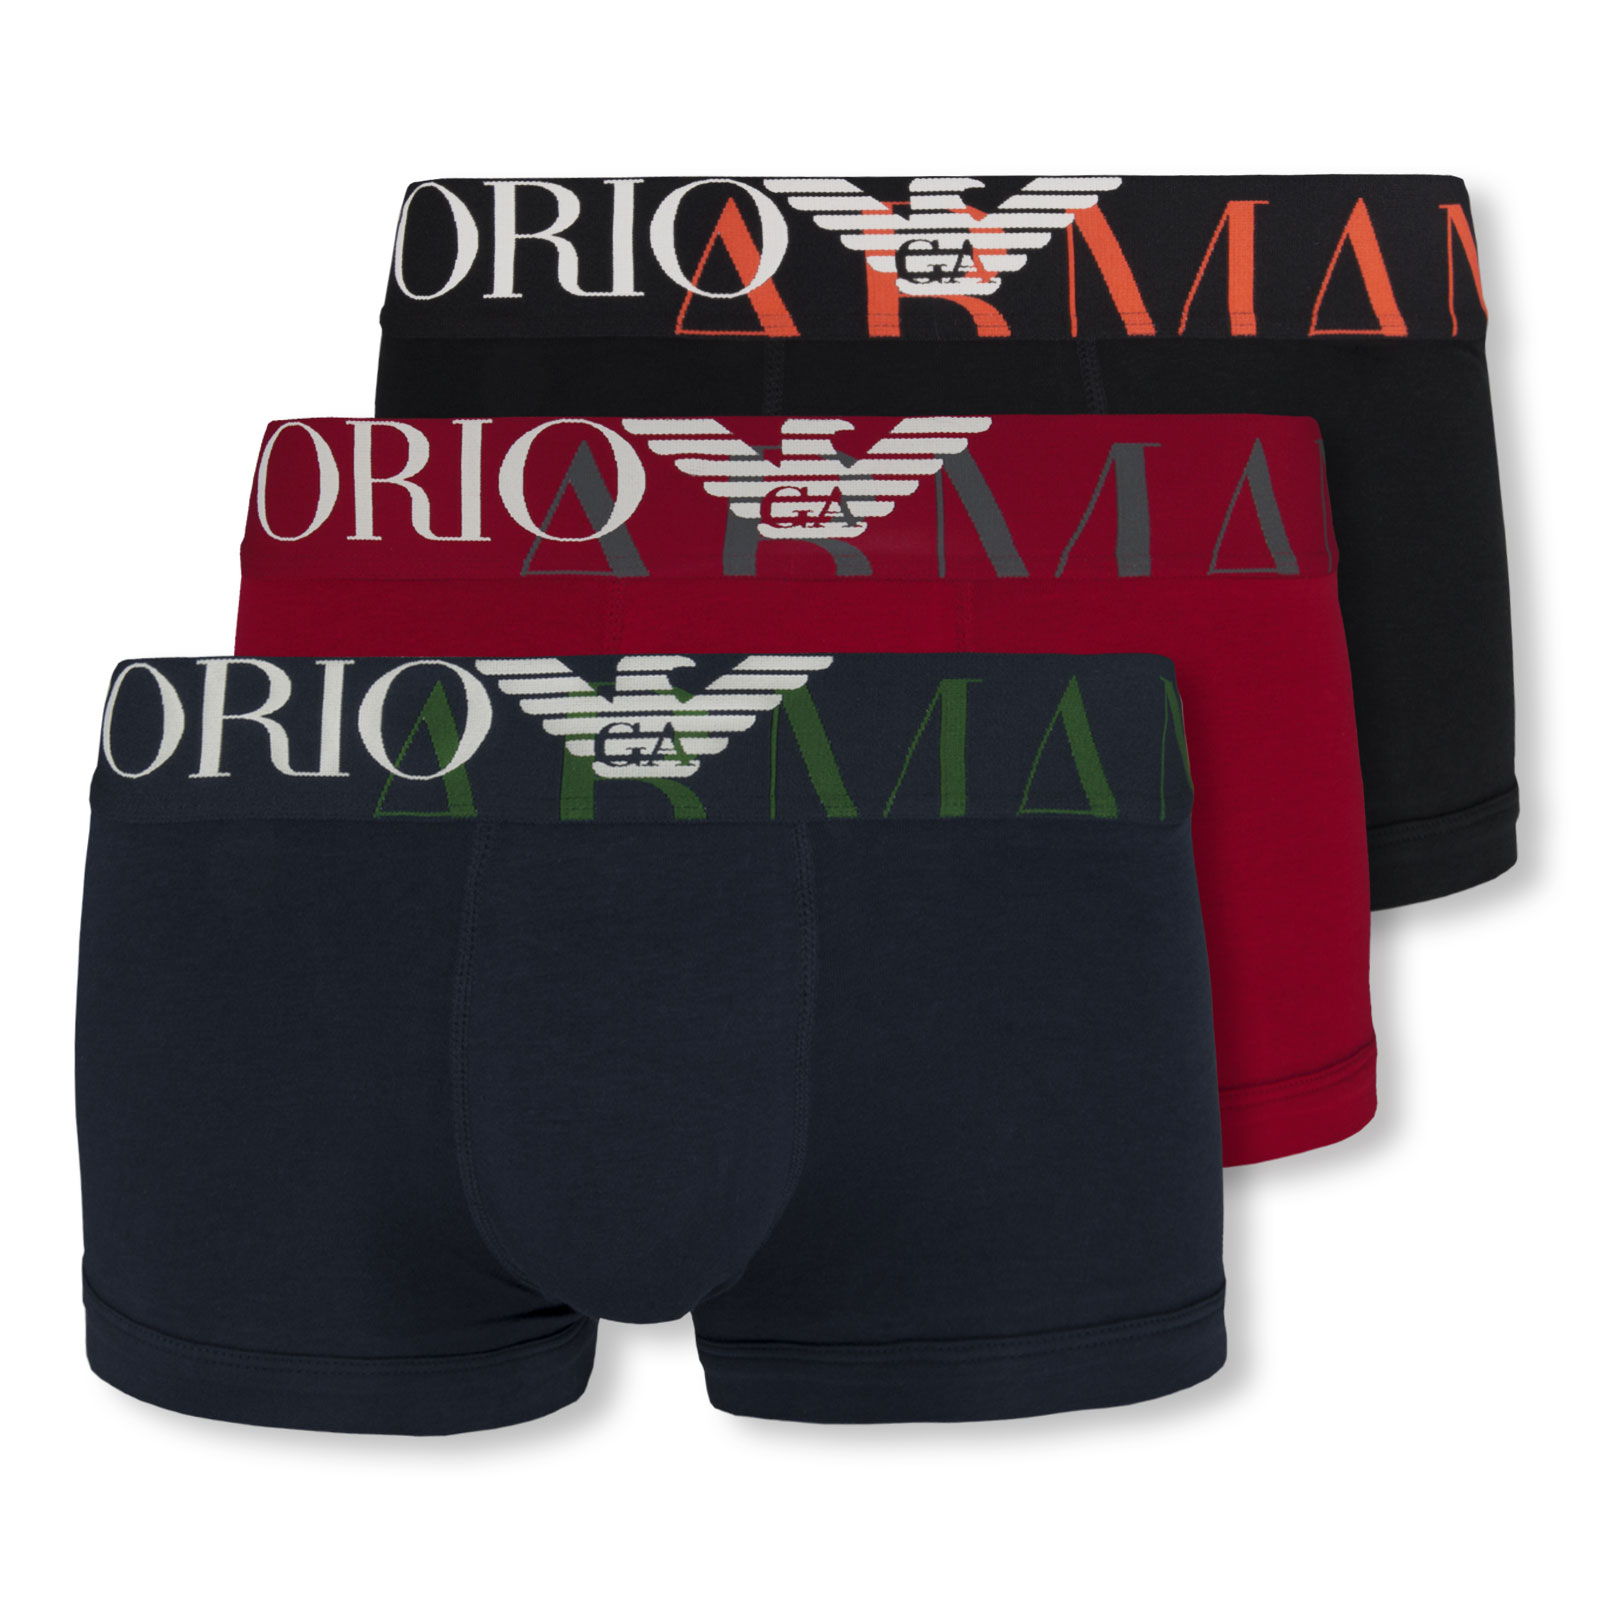 EMPORIO ARMANI Herren Boxershorts Stretch Cotton Trunk Megalogo in ruby vergrößern